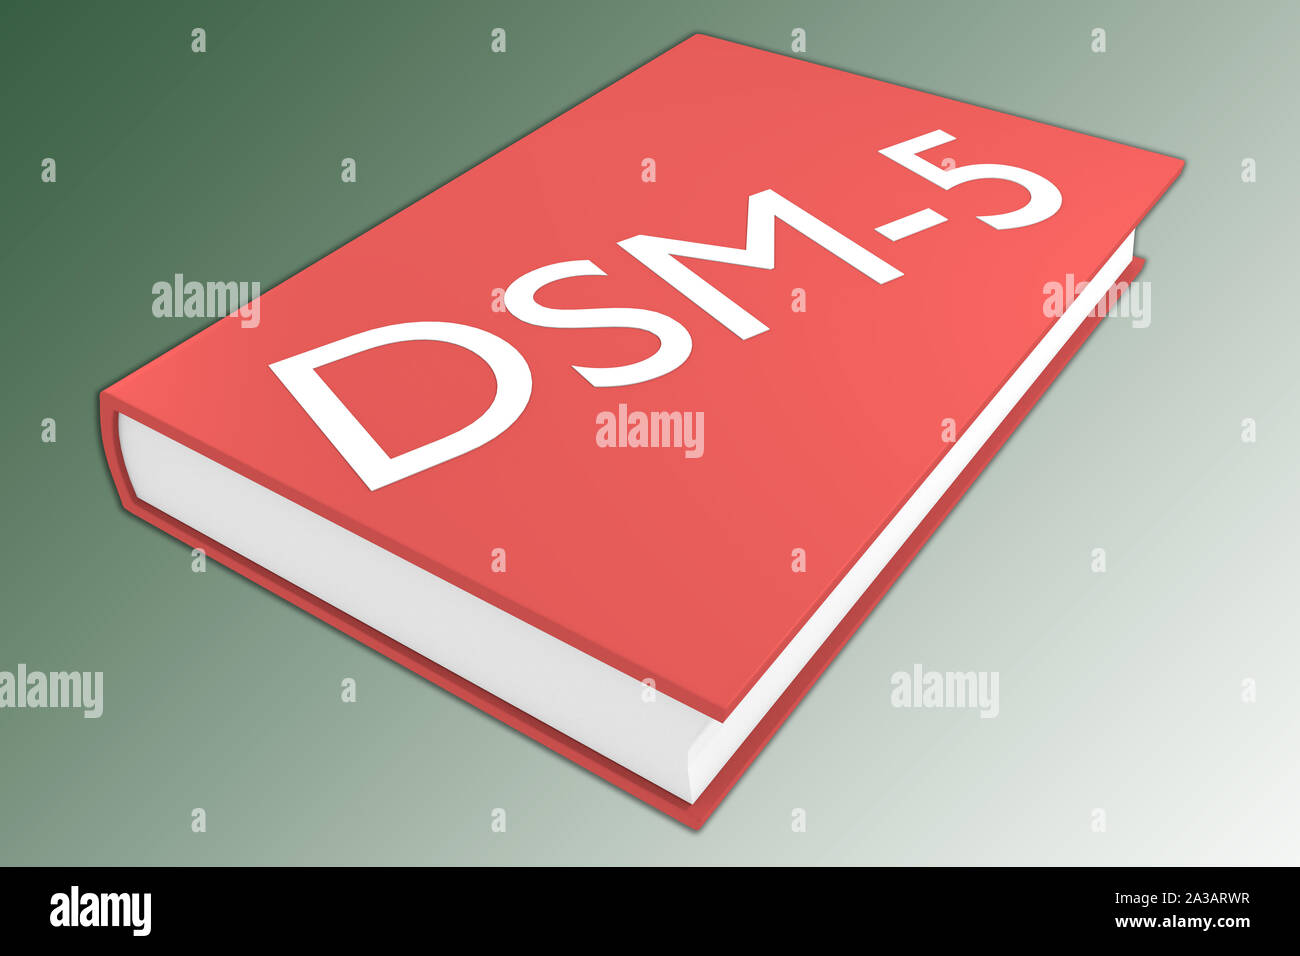 3D illustration of DSM-5 script on a book, isolated on green gradient. Stock Photo